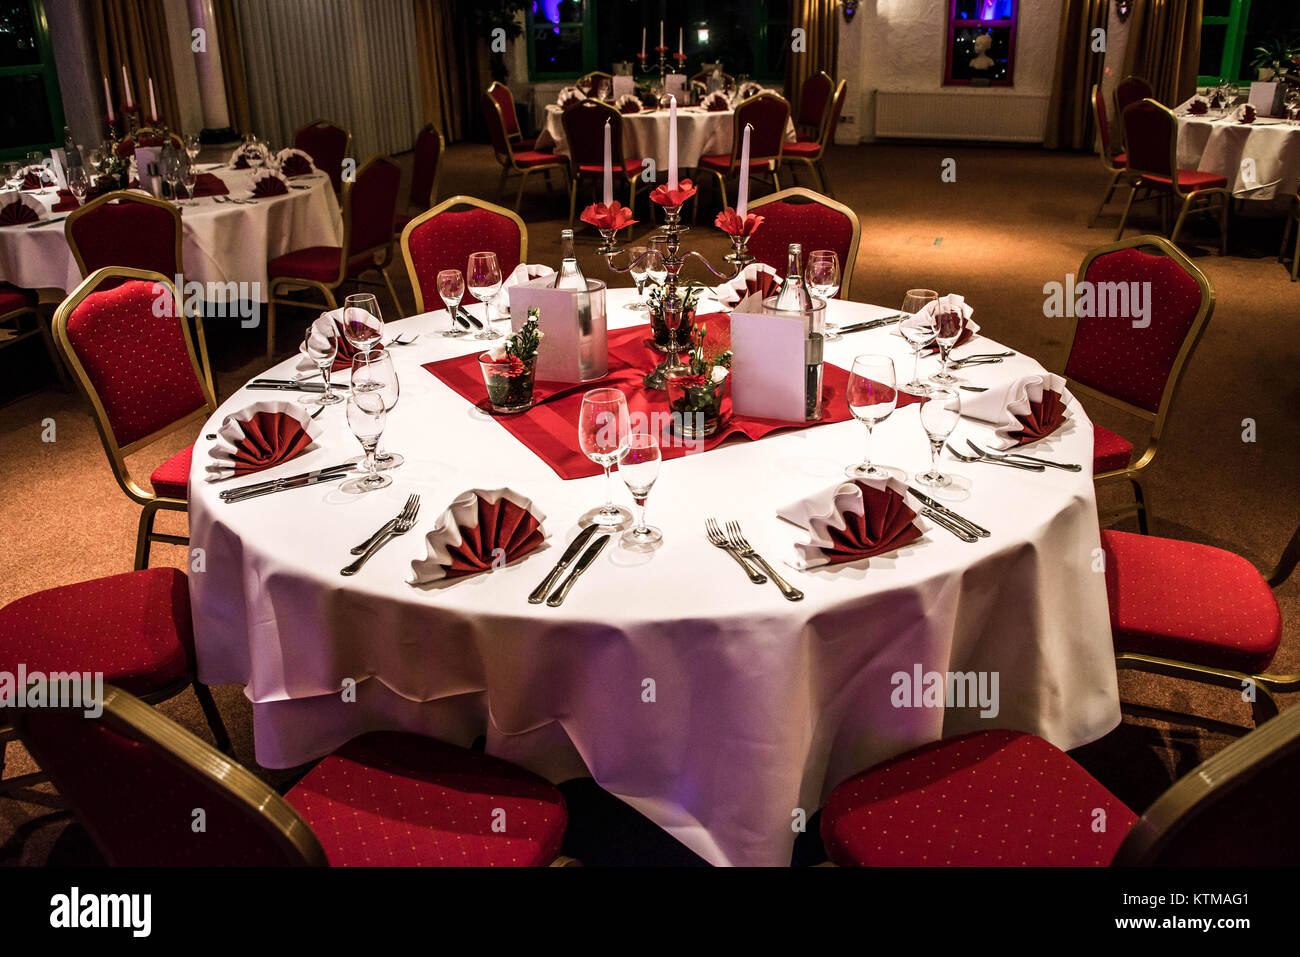 Banquet With Red Table Setting Red Tablecloth White Dishes Silver